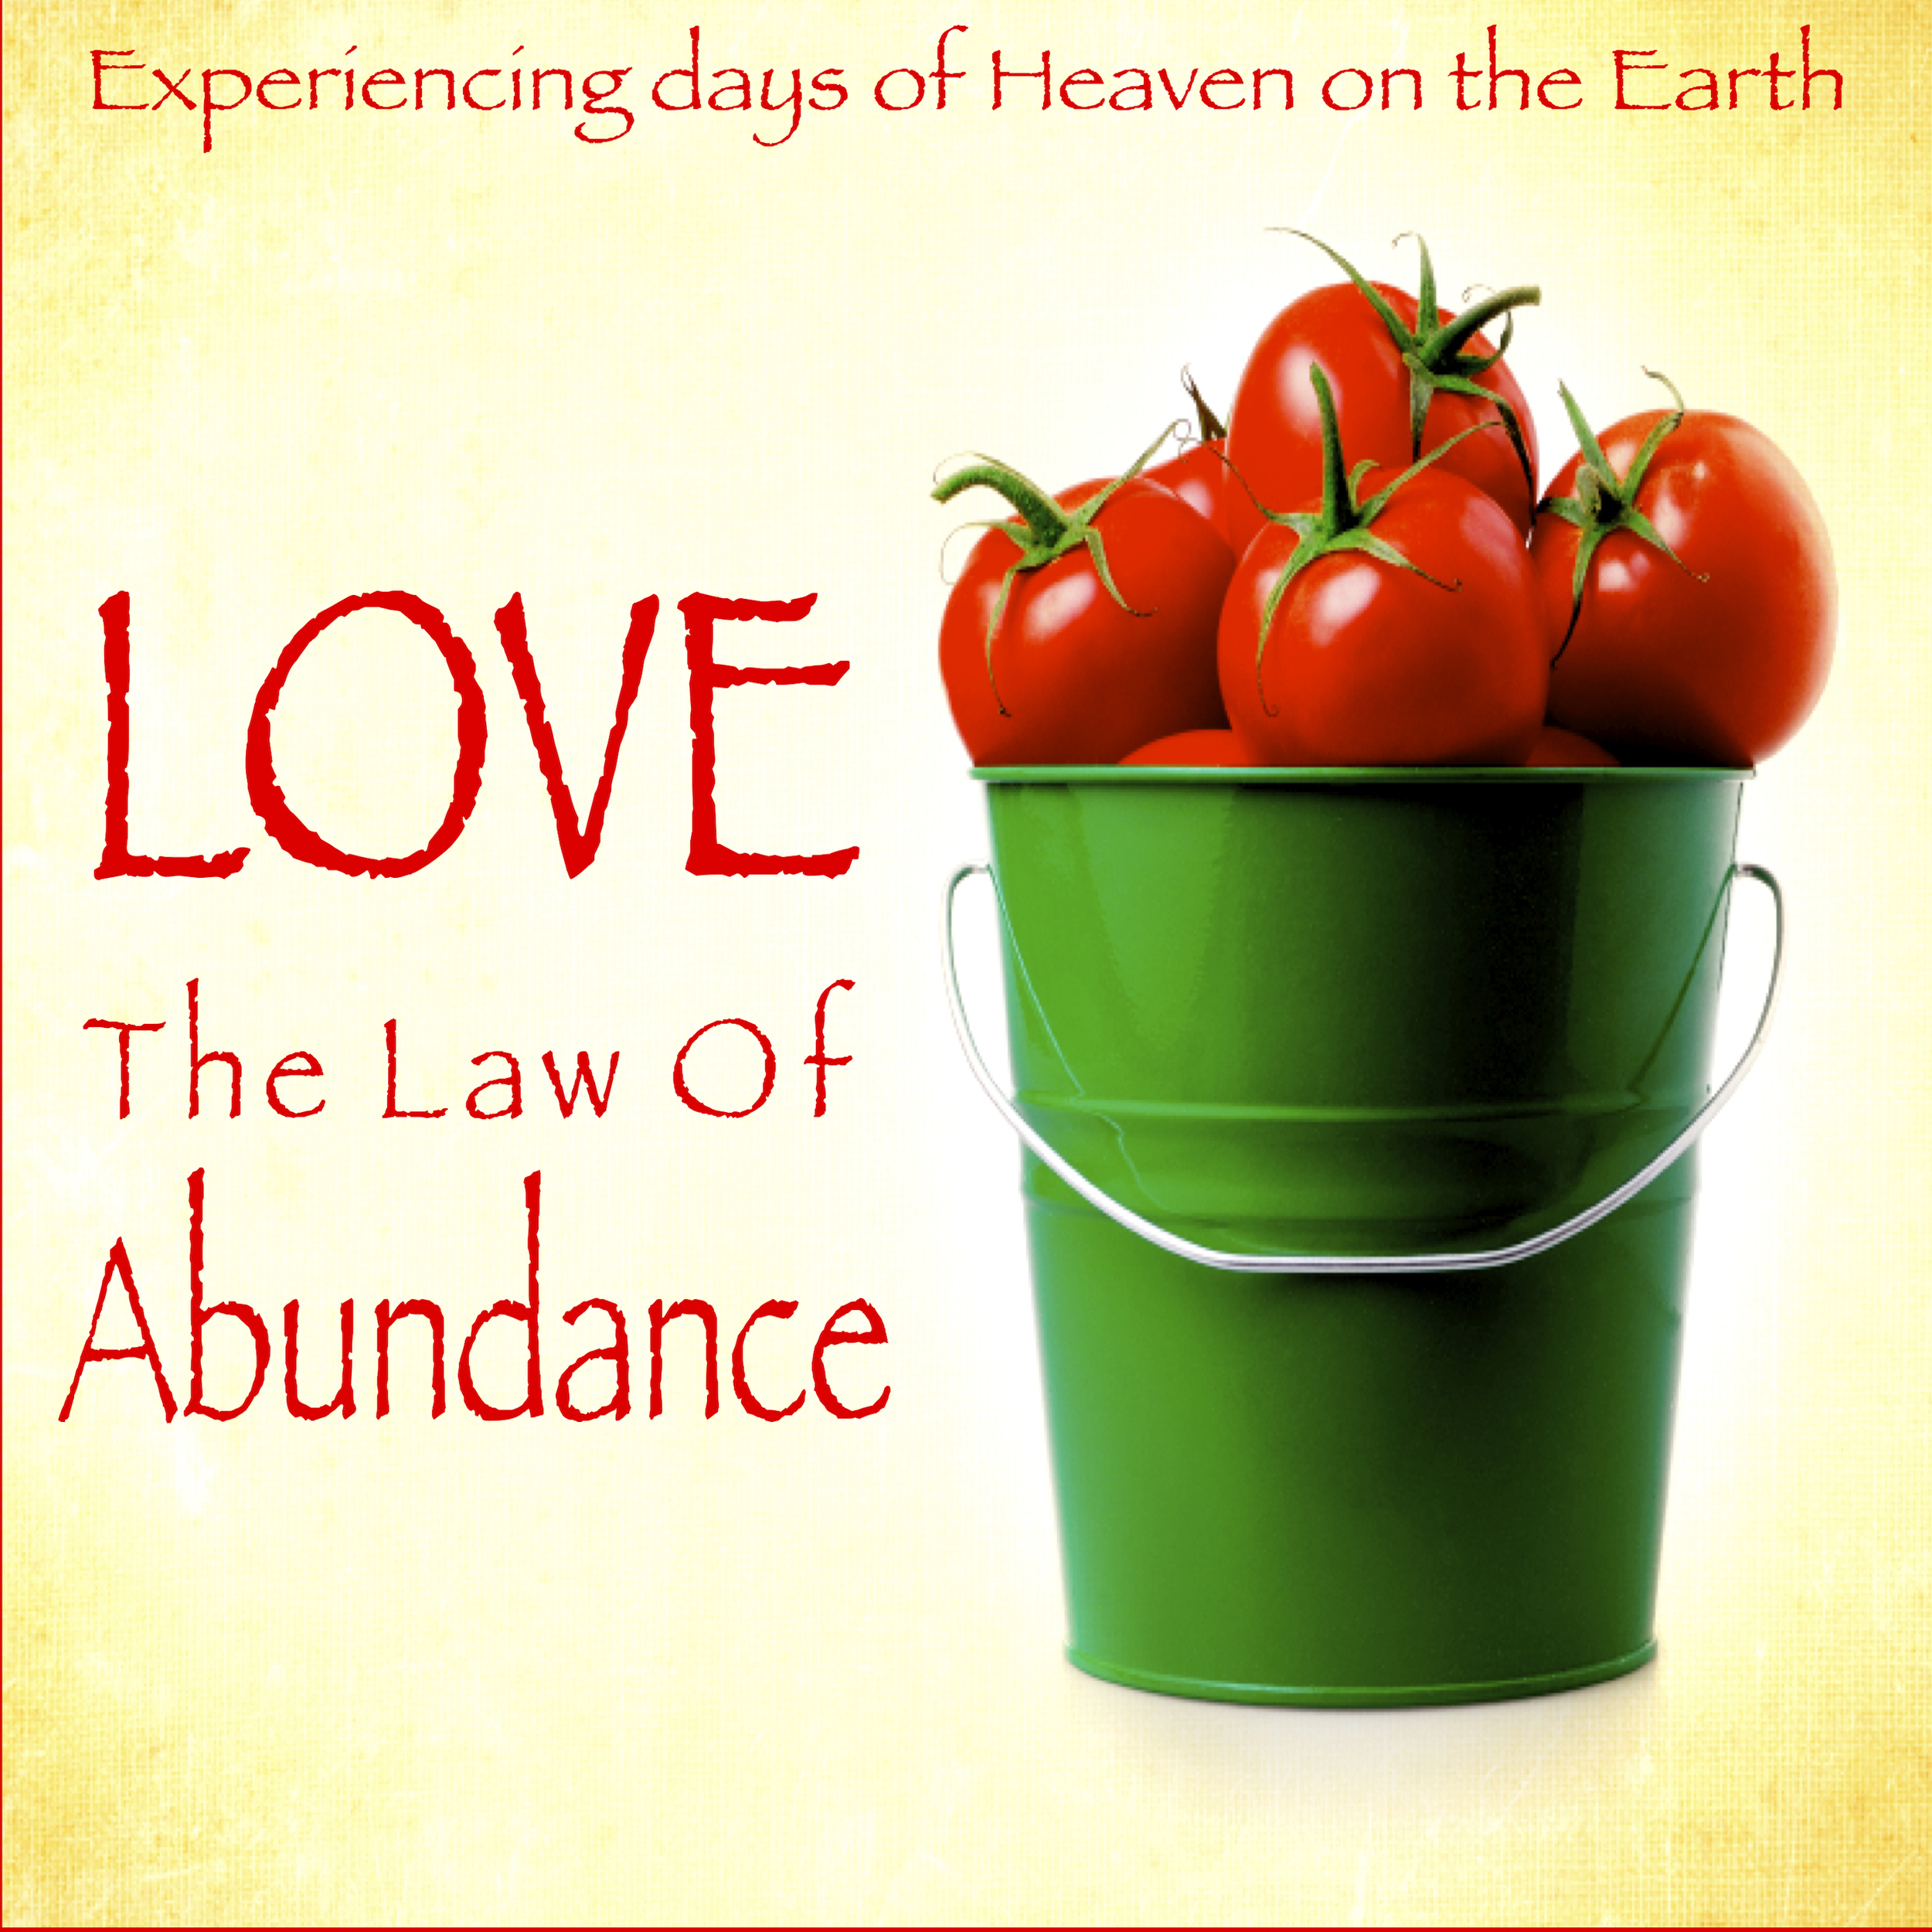 Love The Law Of Abundance.jpg